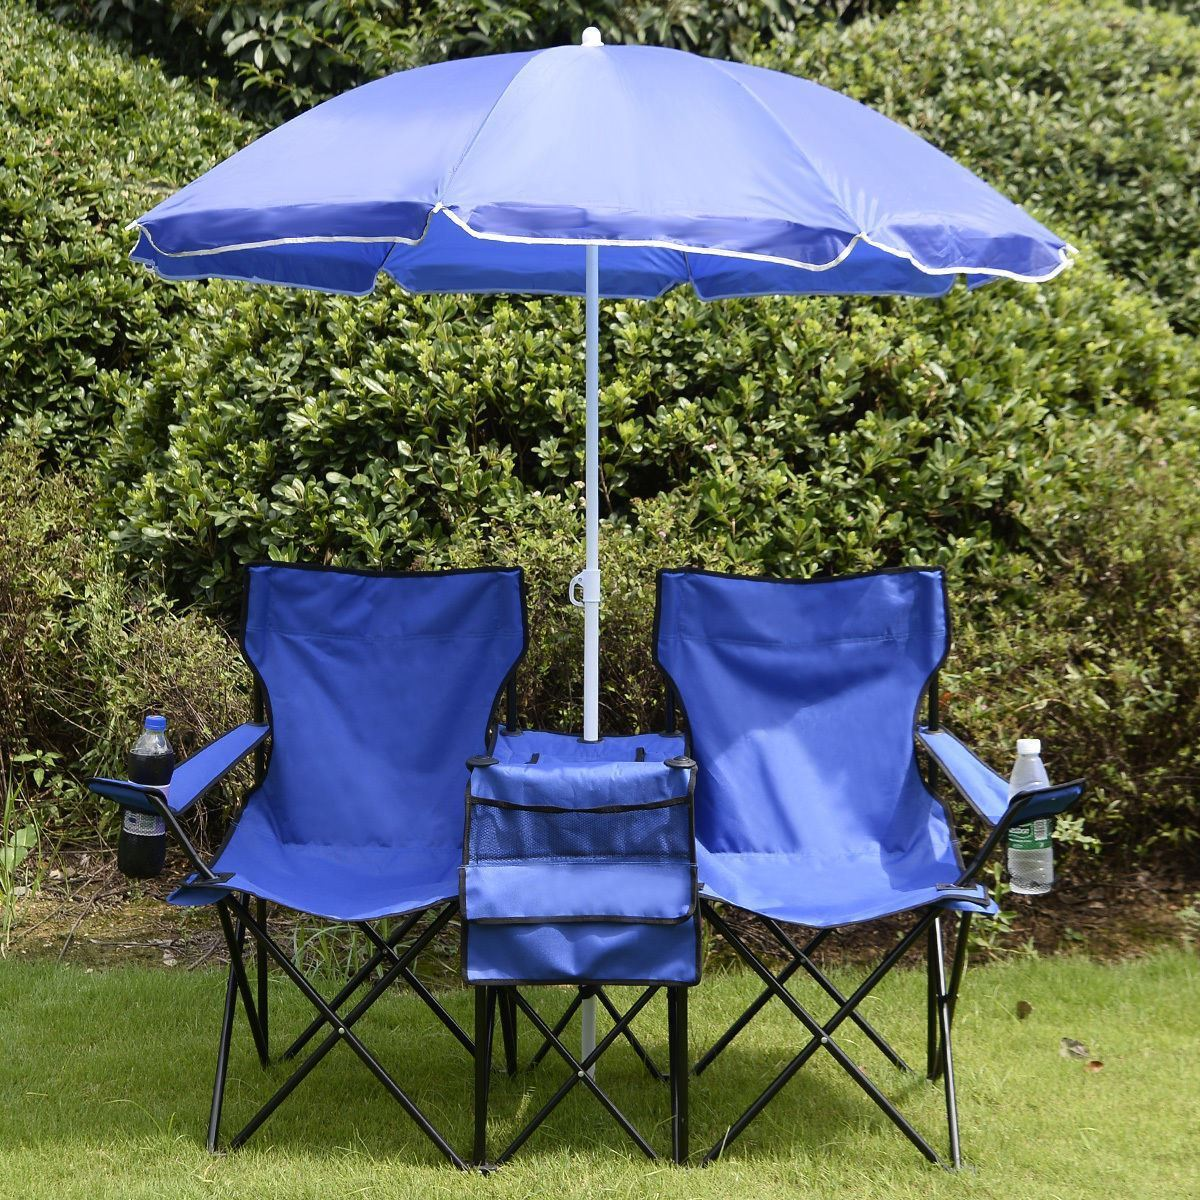 Double Folding Picnic Camping Chair with Umbrella,Table and Cooler Beach